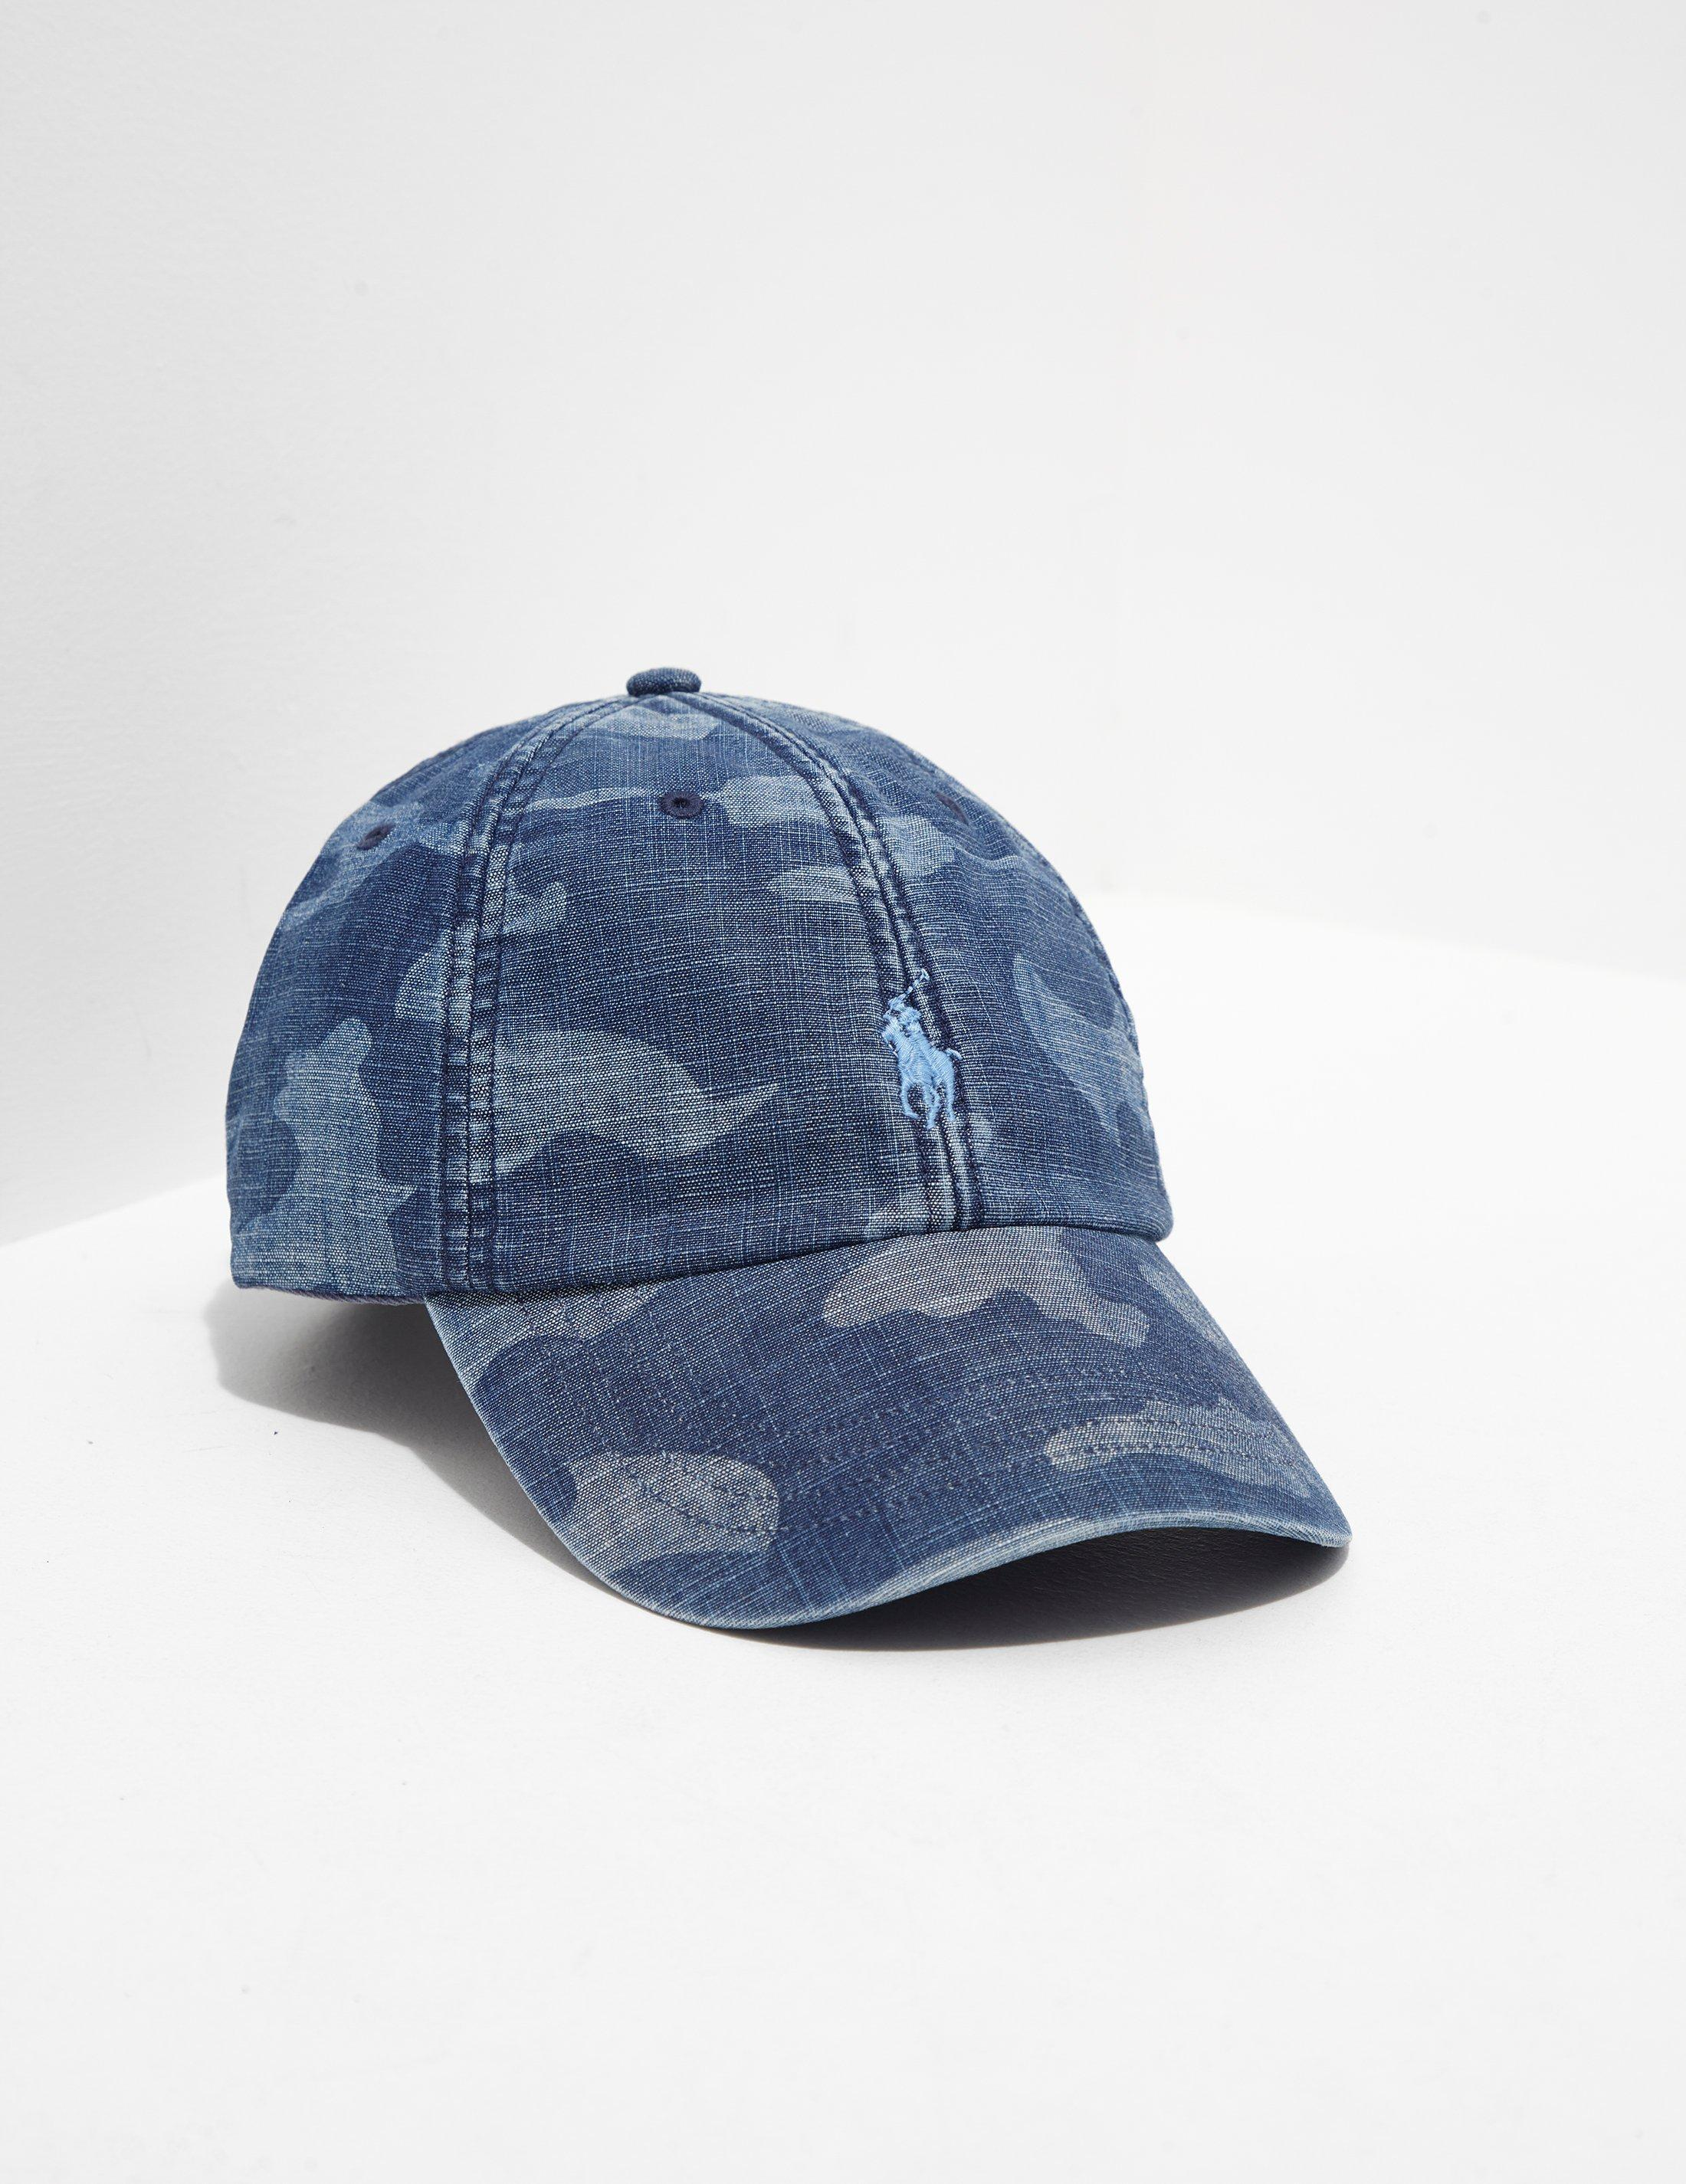 d809bfa9863c1 Polo Ralph Lauren Mens Camo Cap - Online Exclusive Blue in Blue for ...